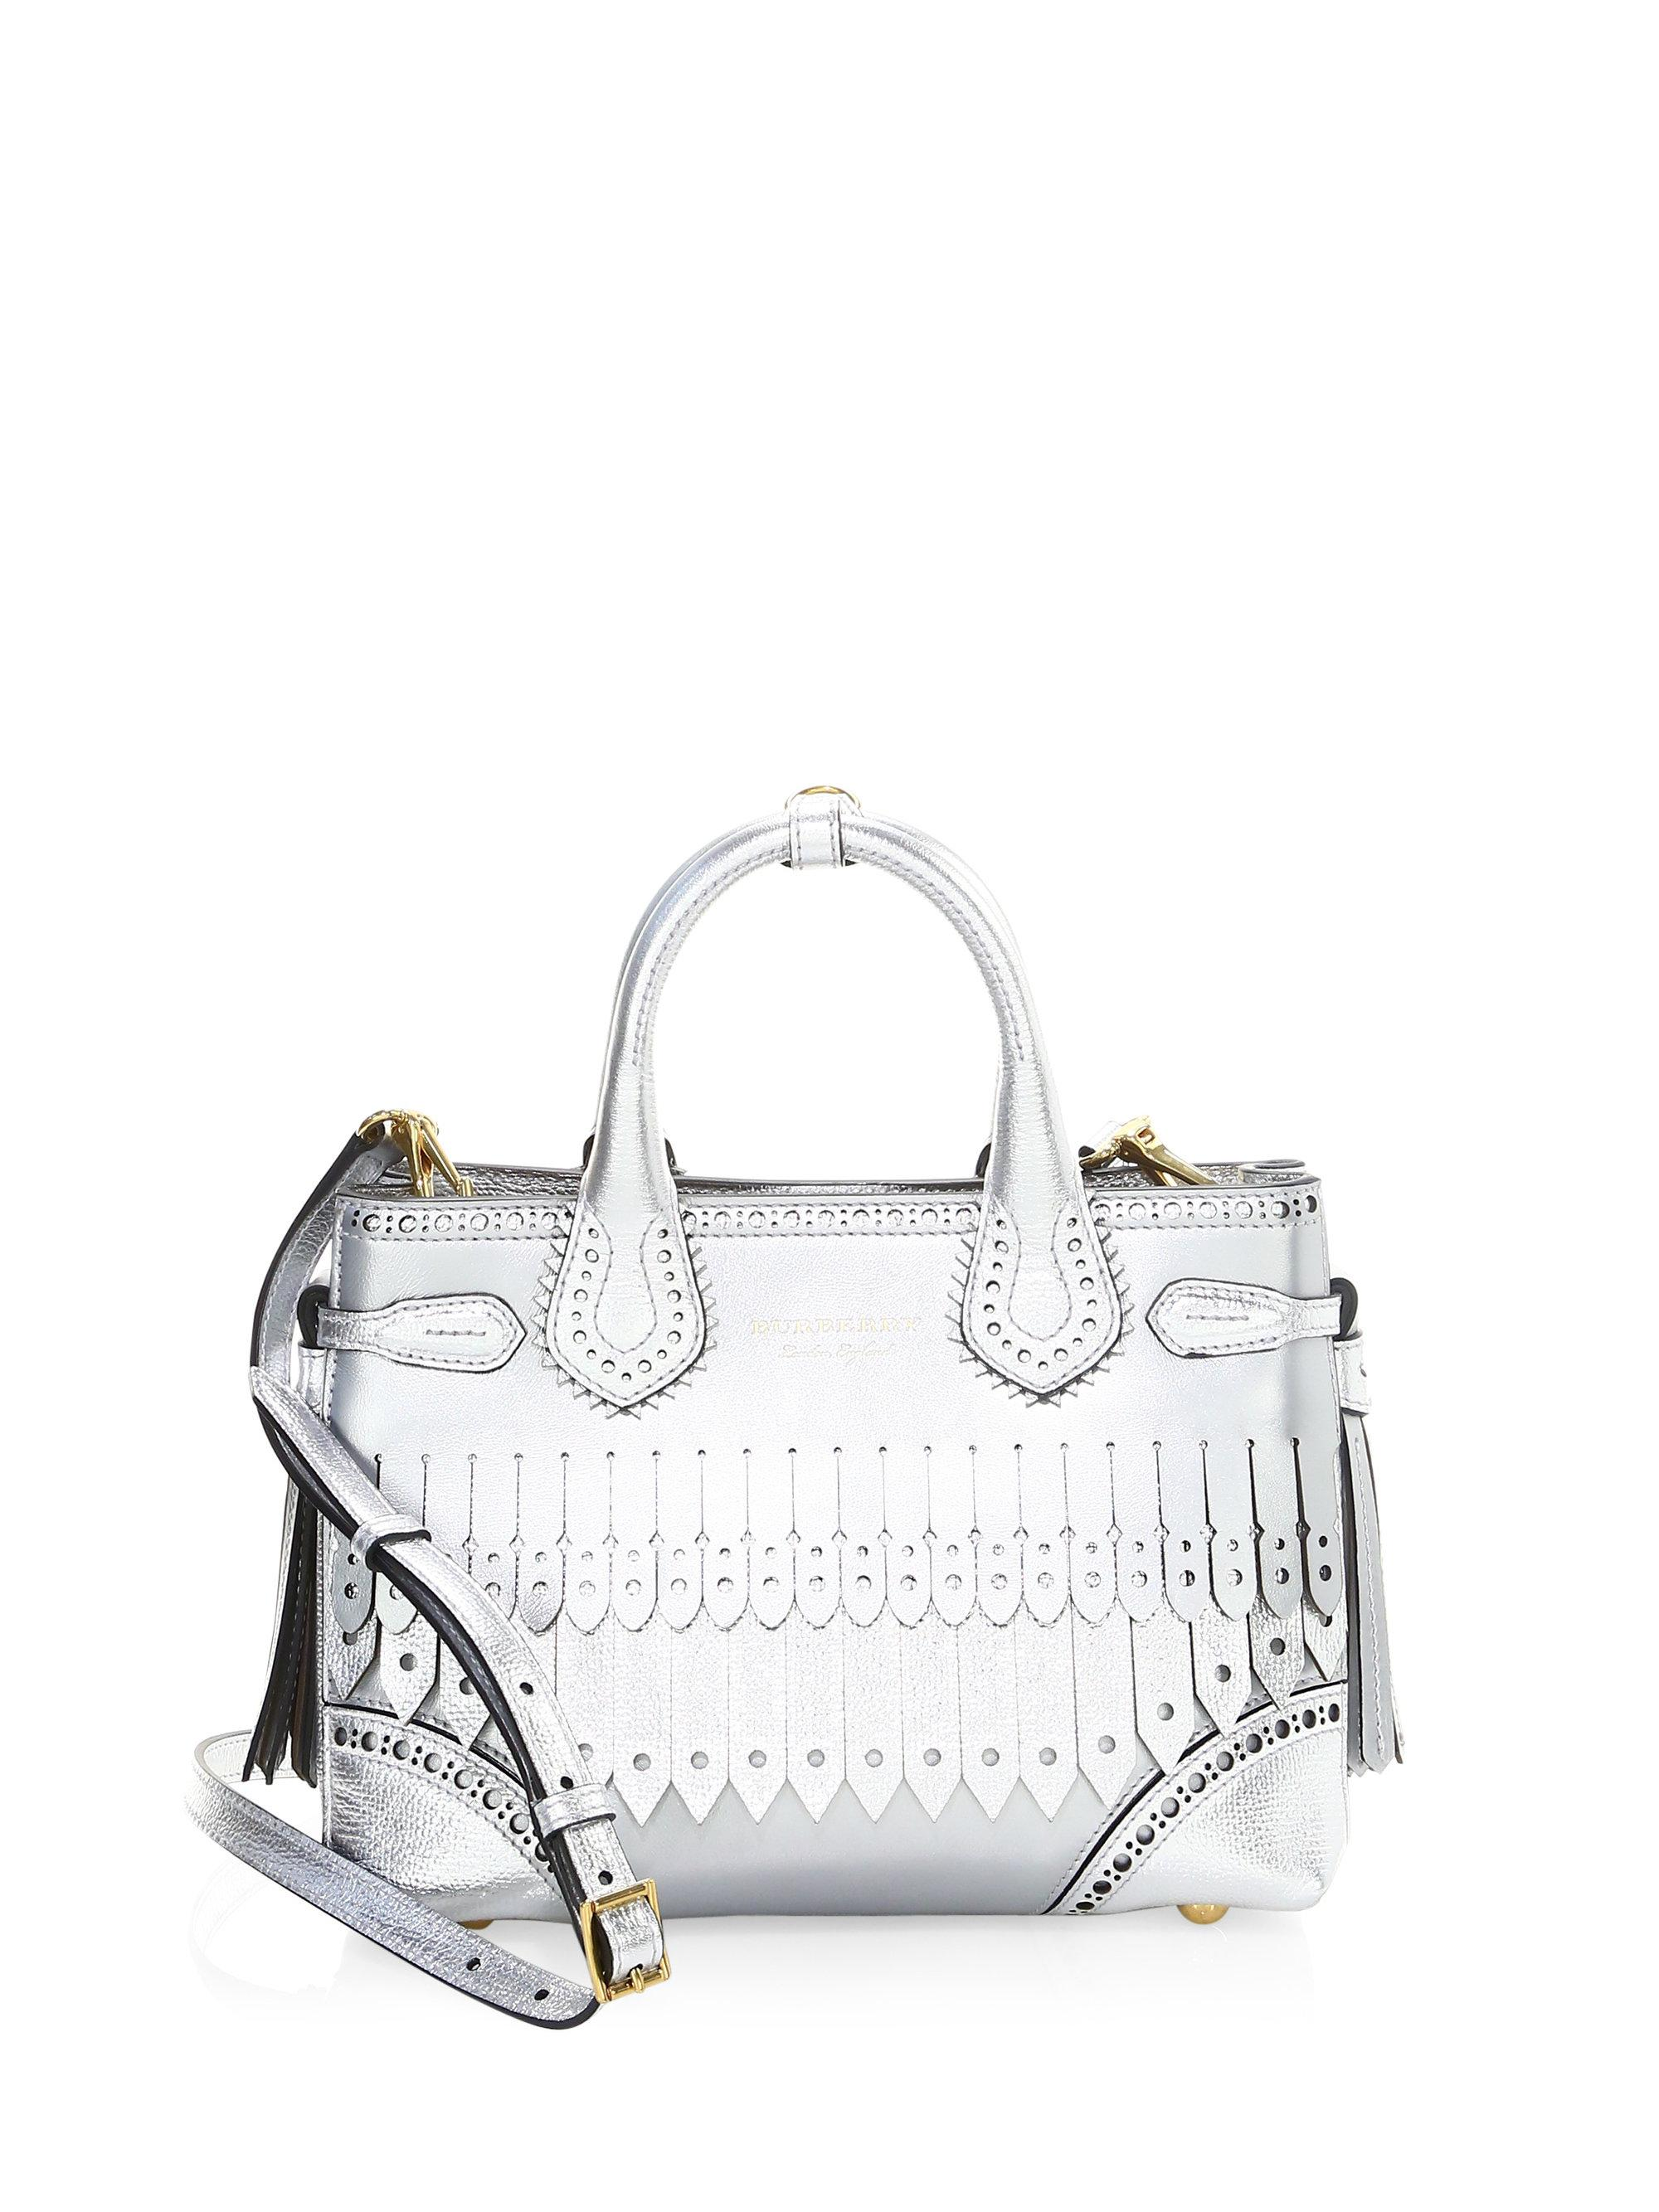 1a9d2c663bc5 Burberry Small Leather Brogue Satchel in Metallic - Lyst